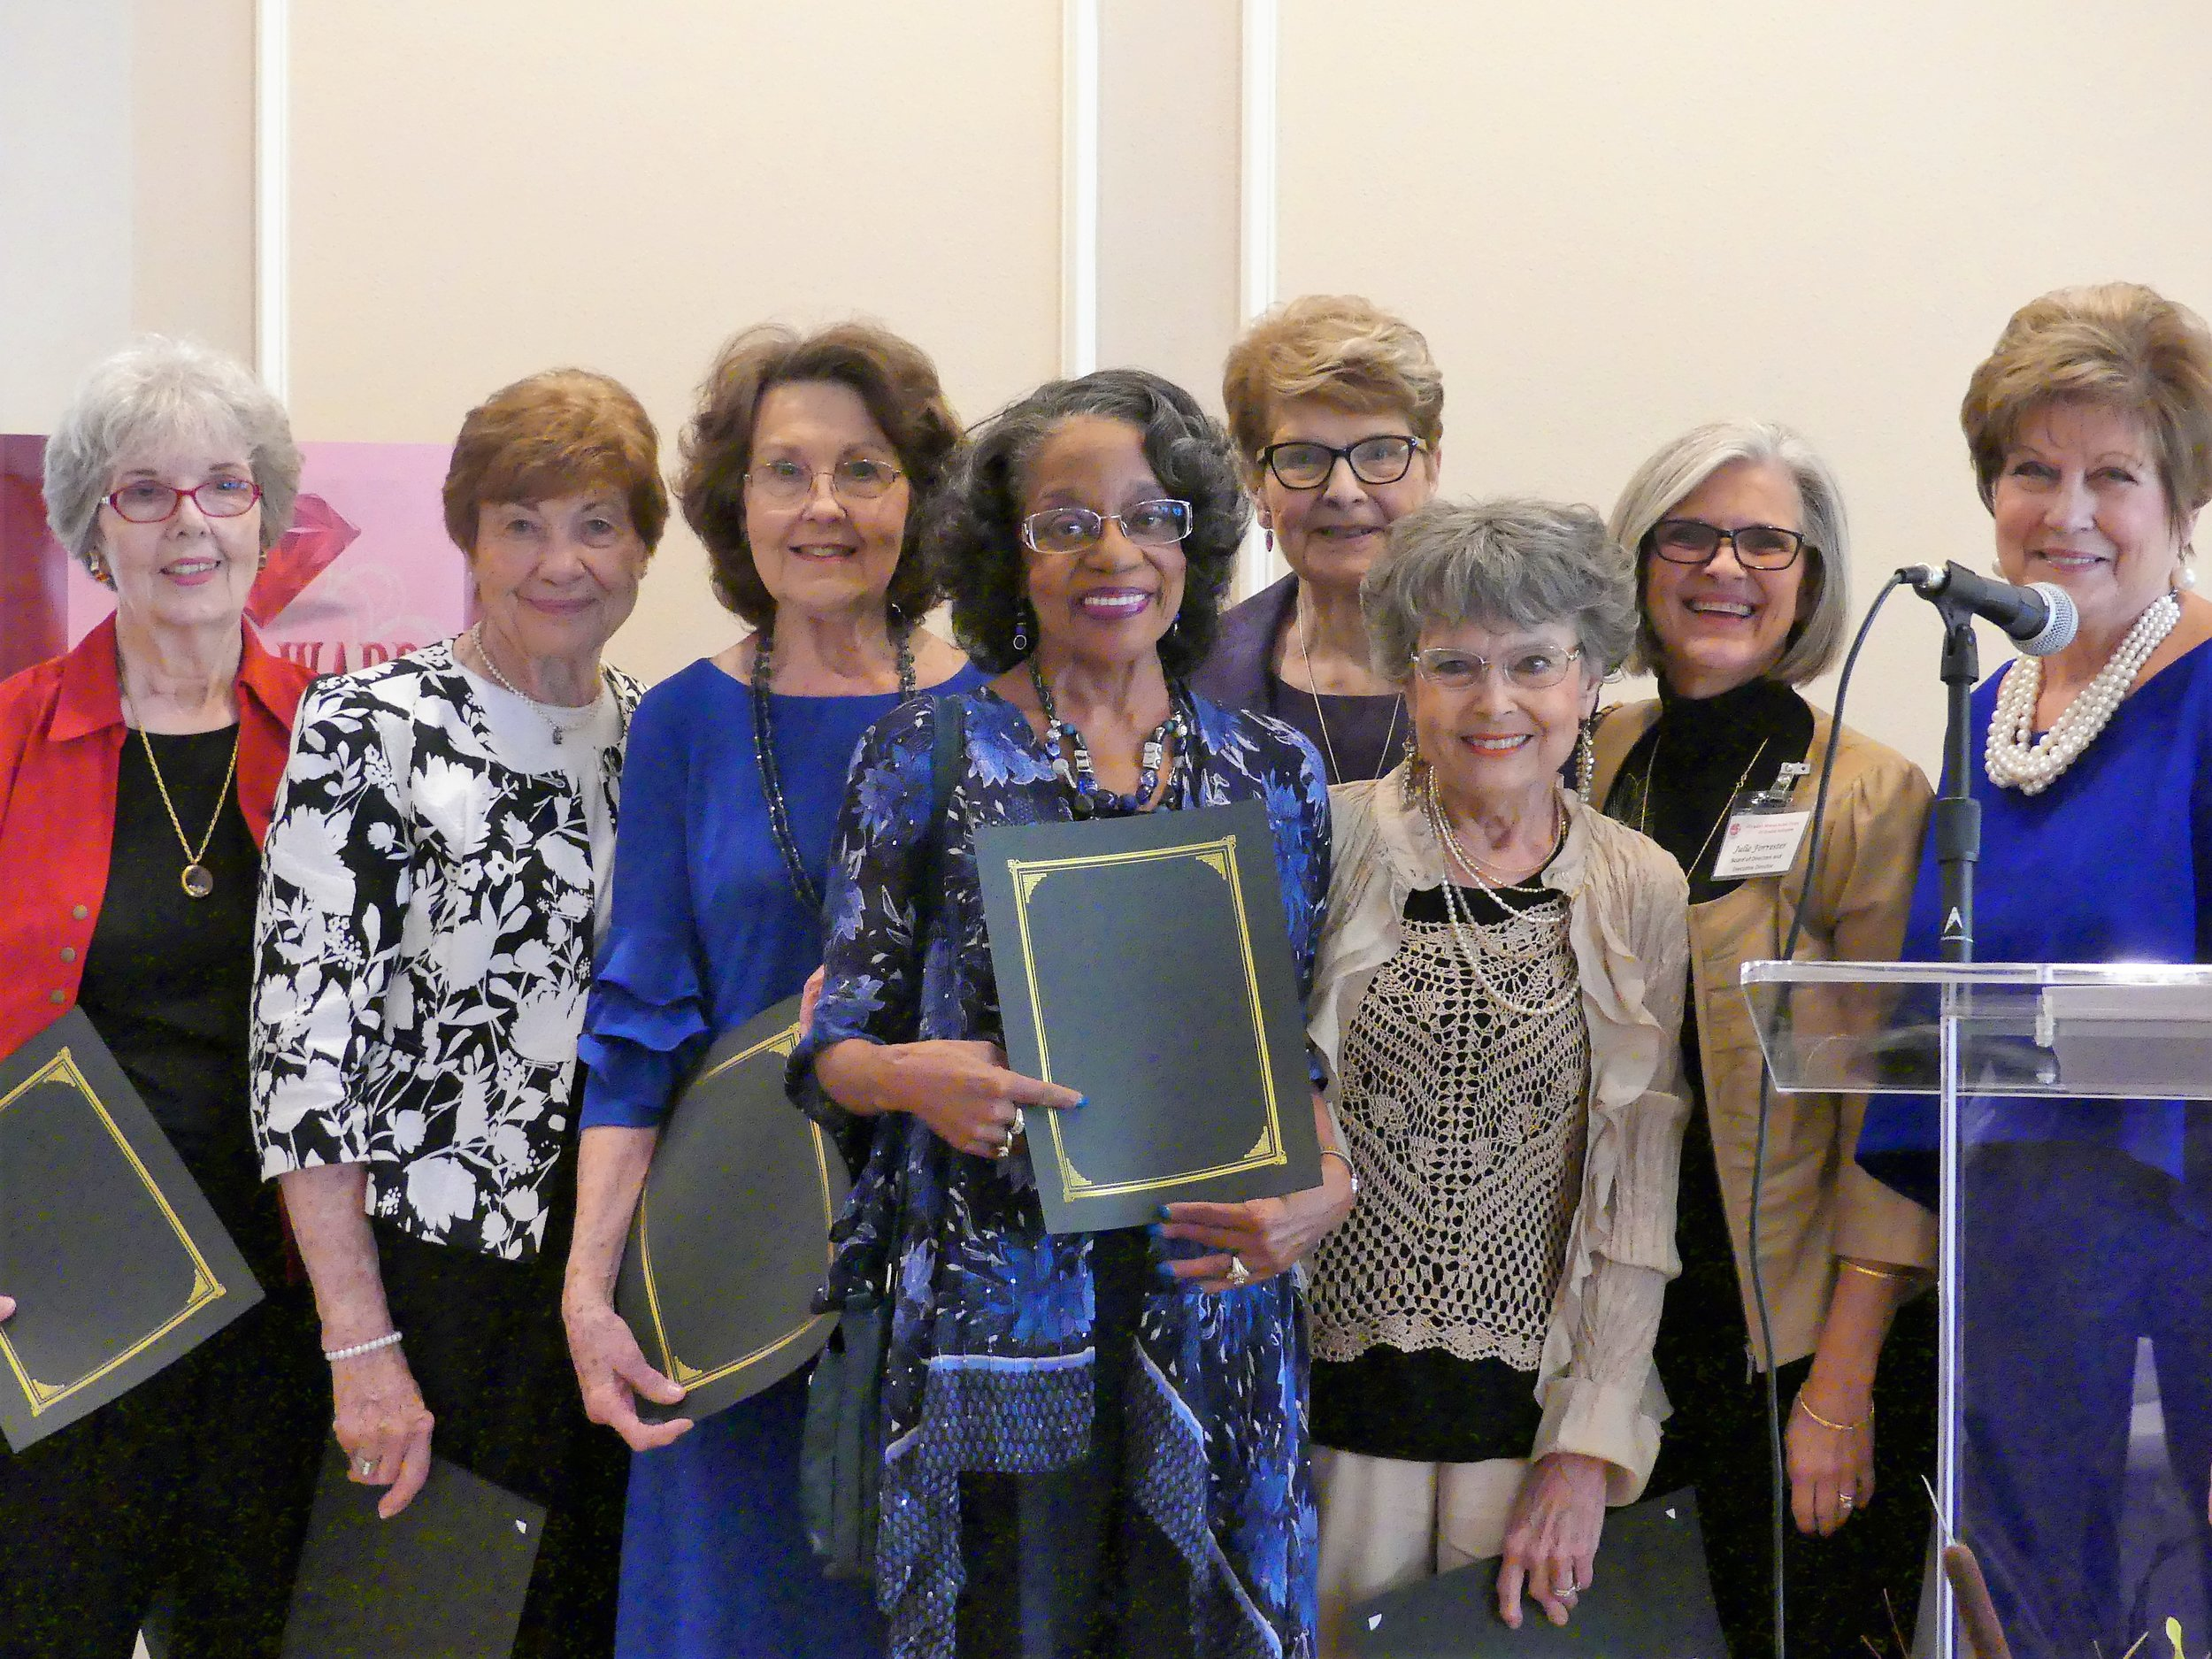 2017 Volunteer of the Year Award - Given in thanks to the CWJC Clothing Boutique Team. Sandra Lewis, Eloise Thorne, Carolyn Alexander, Jean Brown, and Sarah Mulkey pictured (Not pictured: Pat Barber), with Julie Forrester and Judy Duke.